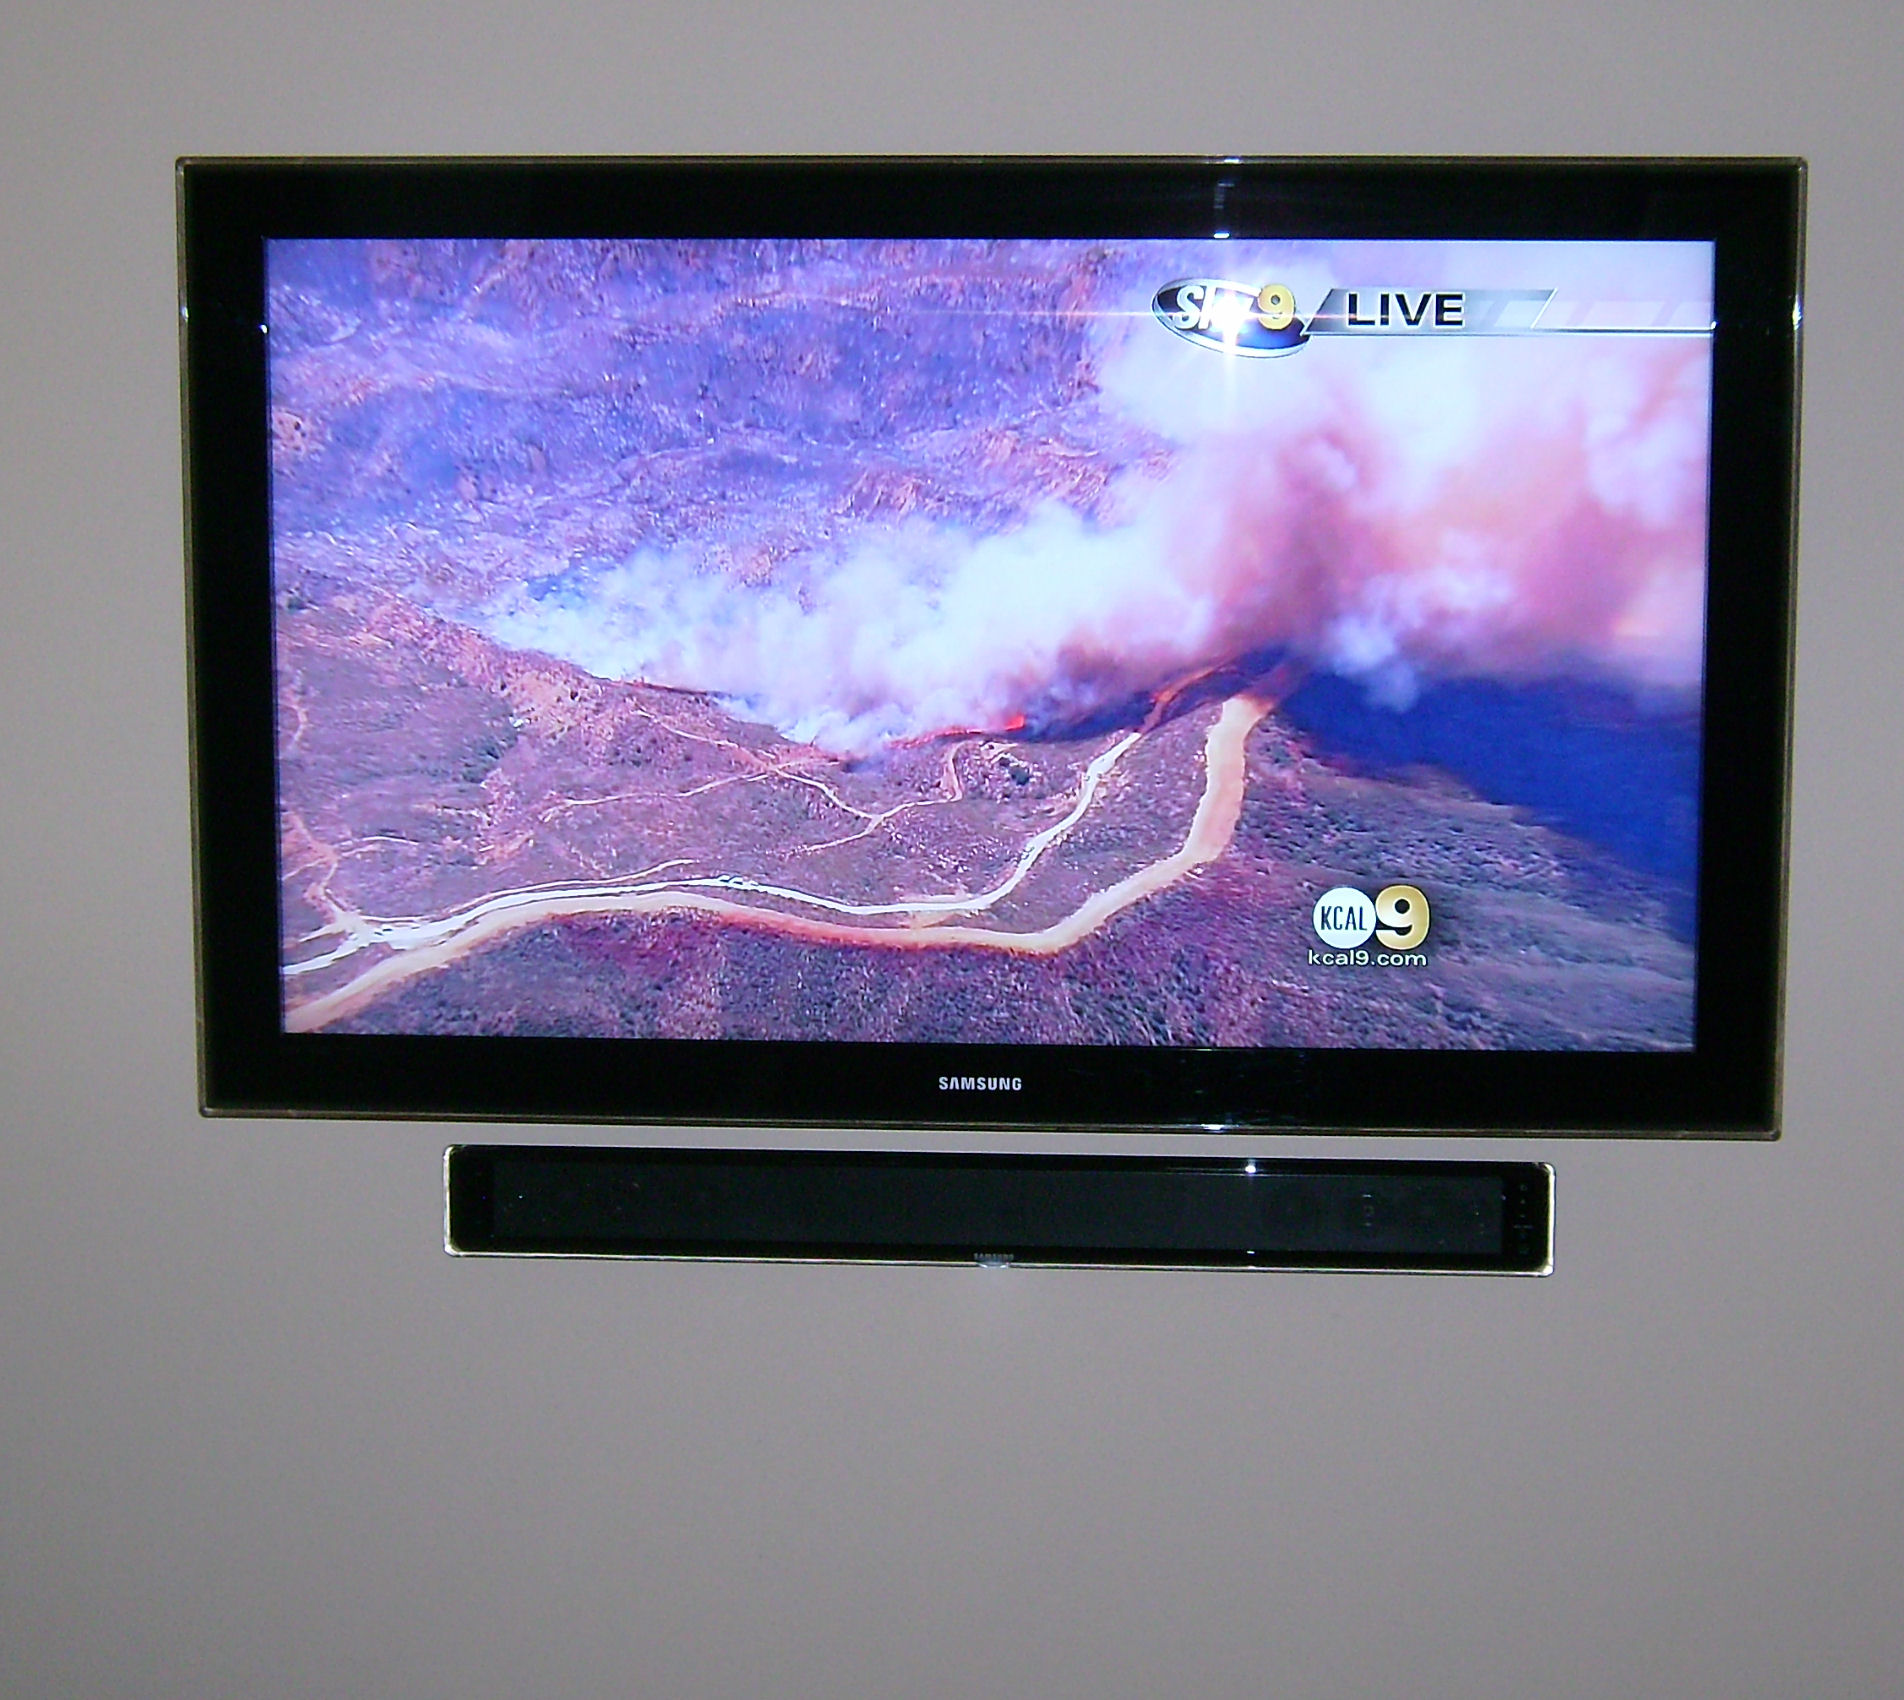 Premium Samsung LED TV Installation/Sound Bar Installation